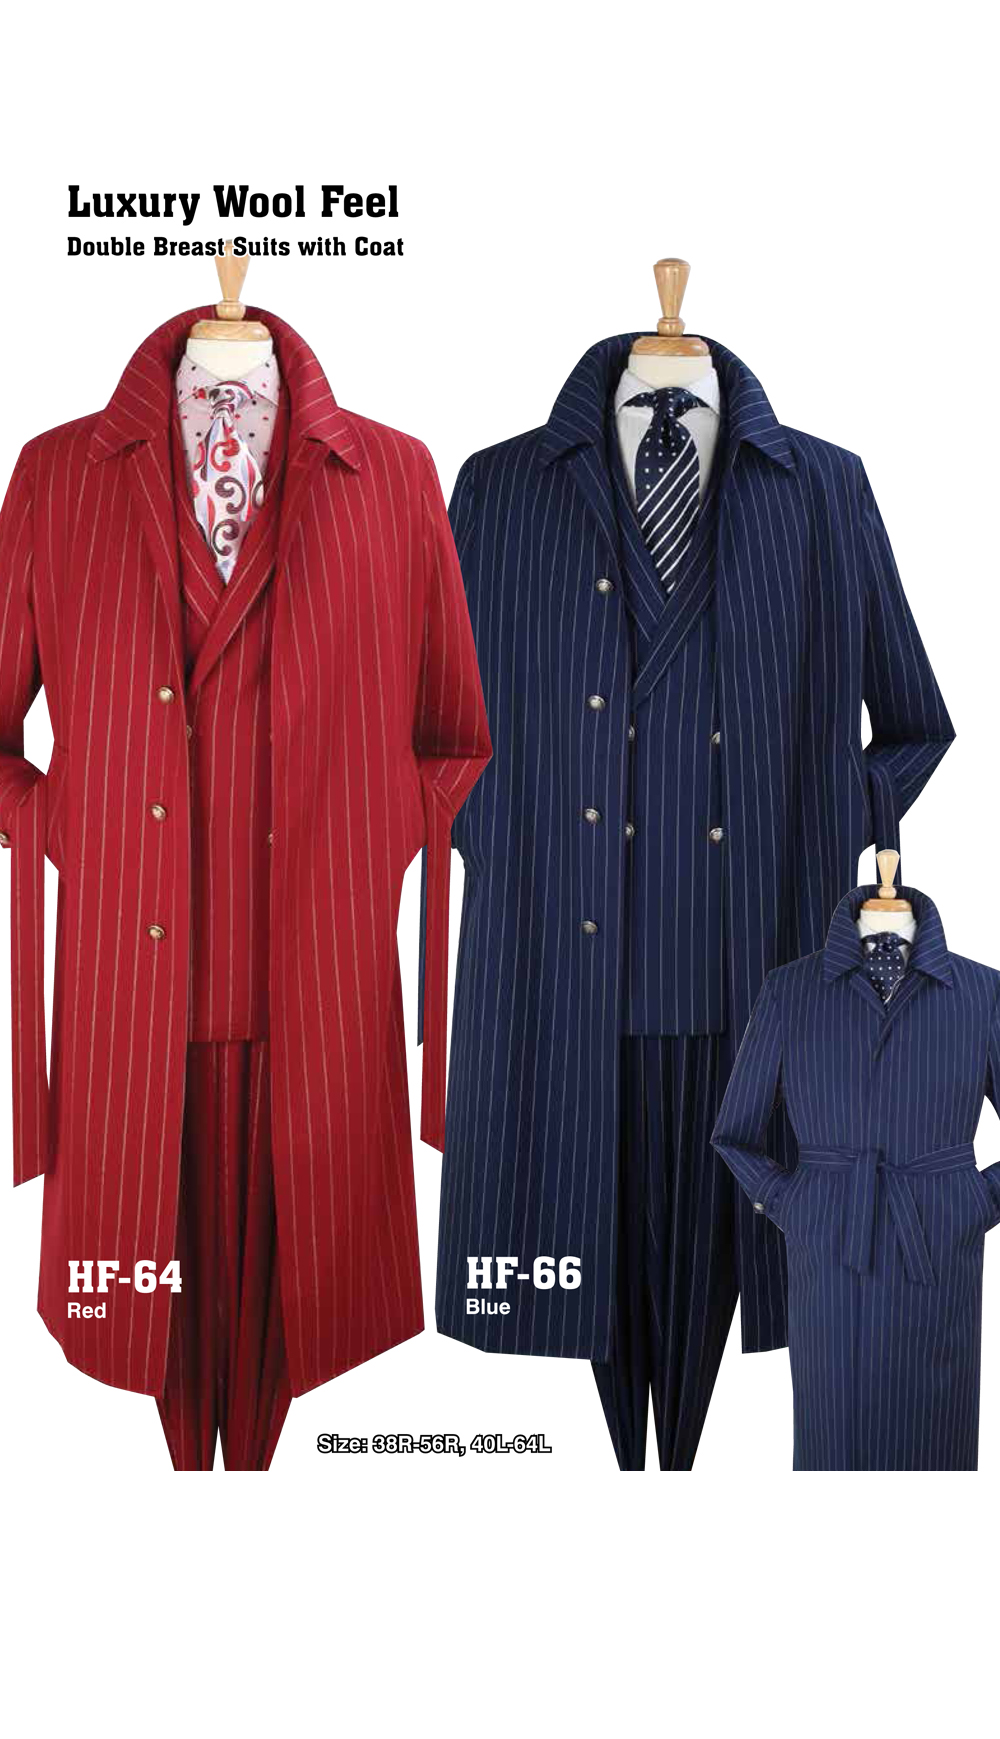 High Fashion Men Suits HF-64